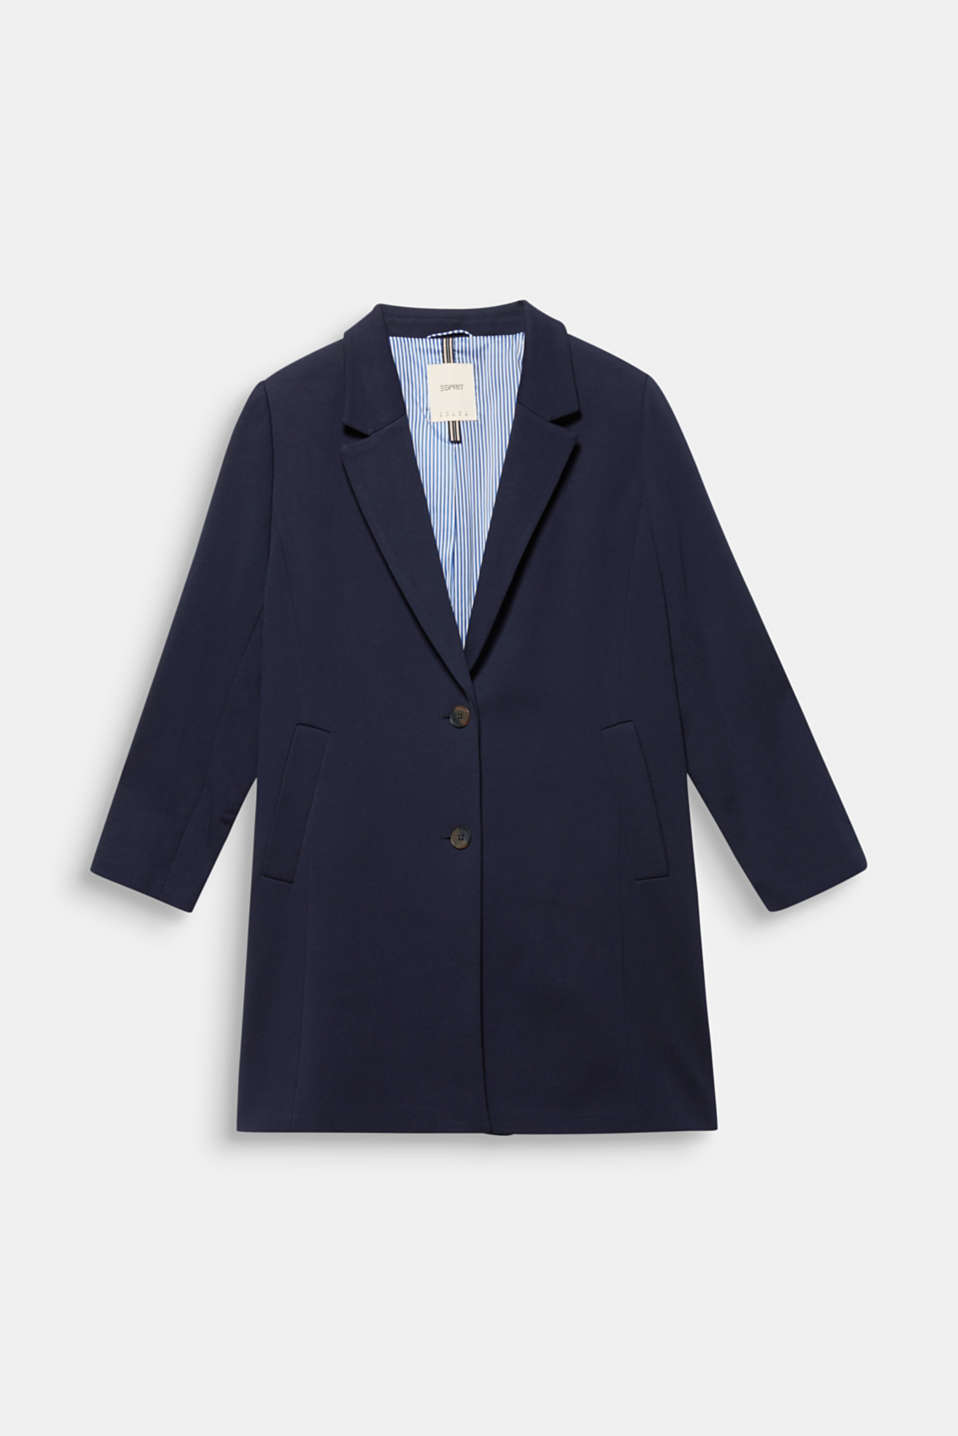 CURVY jersey coat with slits, NAVY, detail image number 6